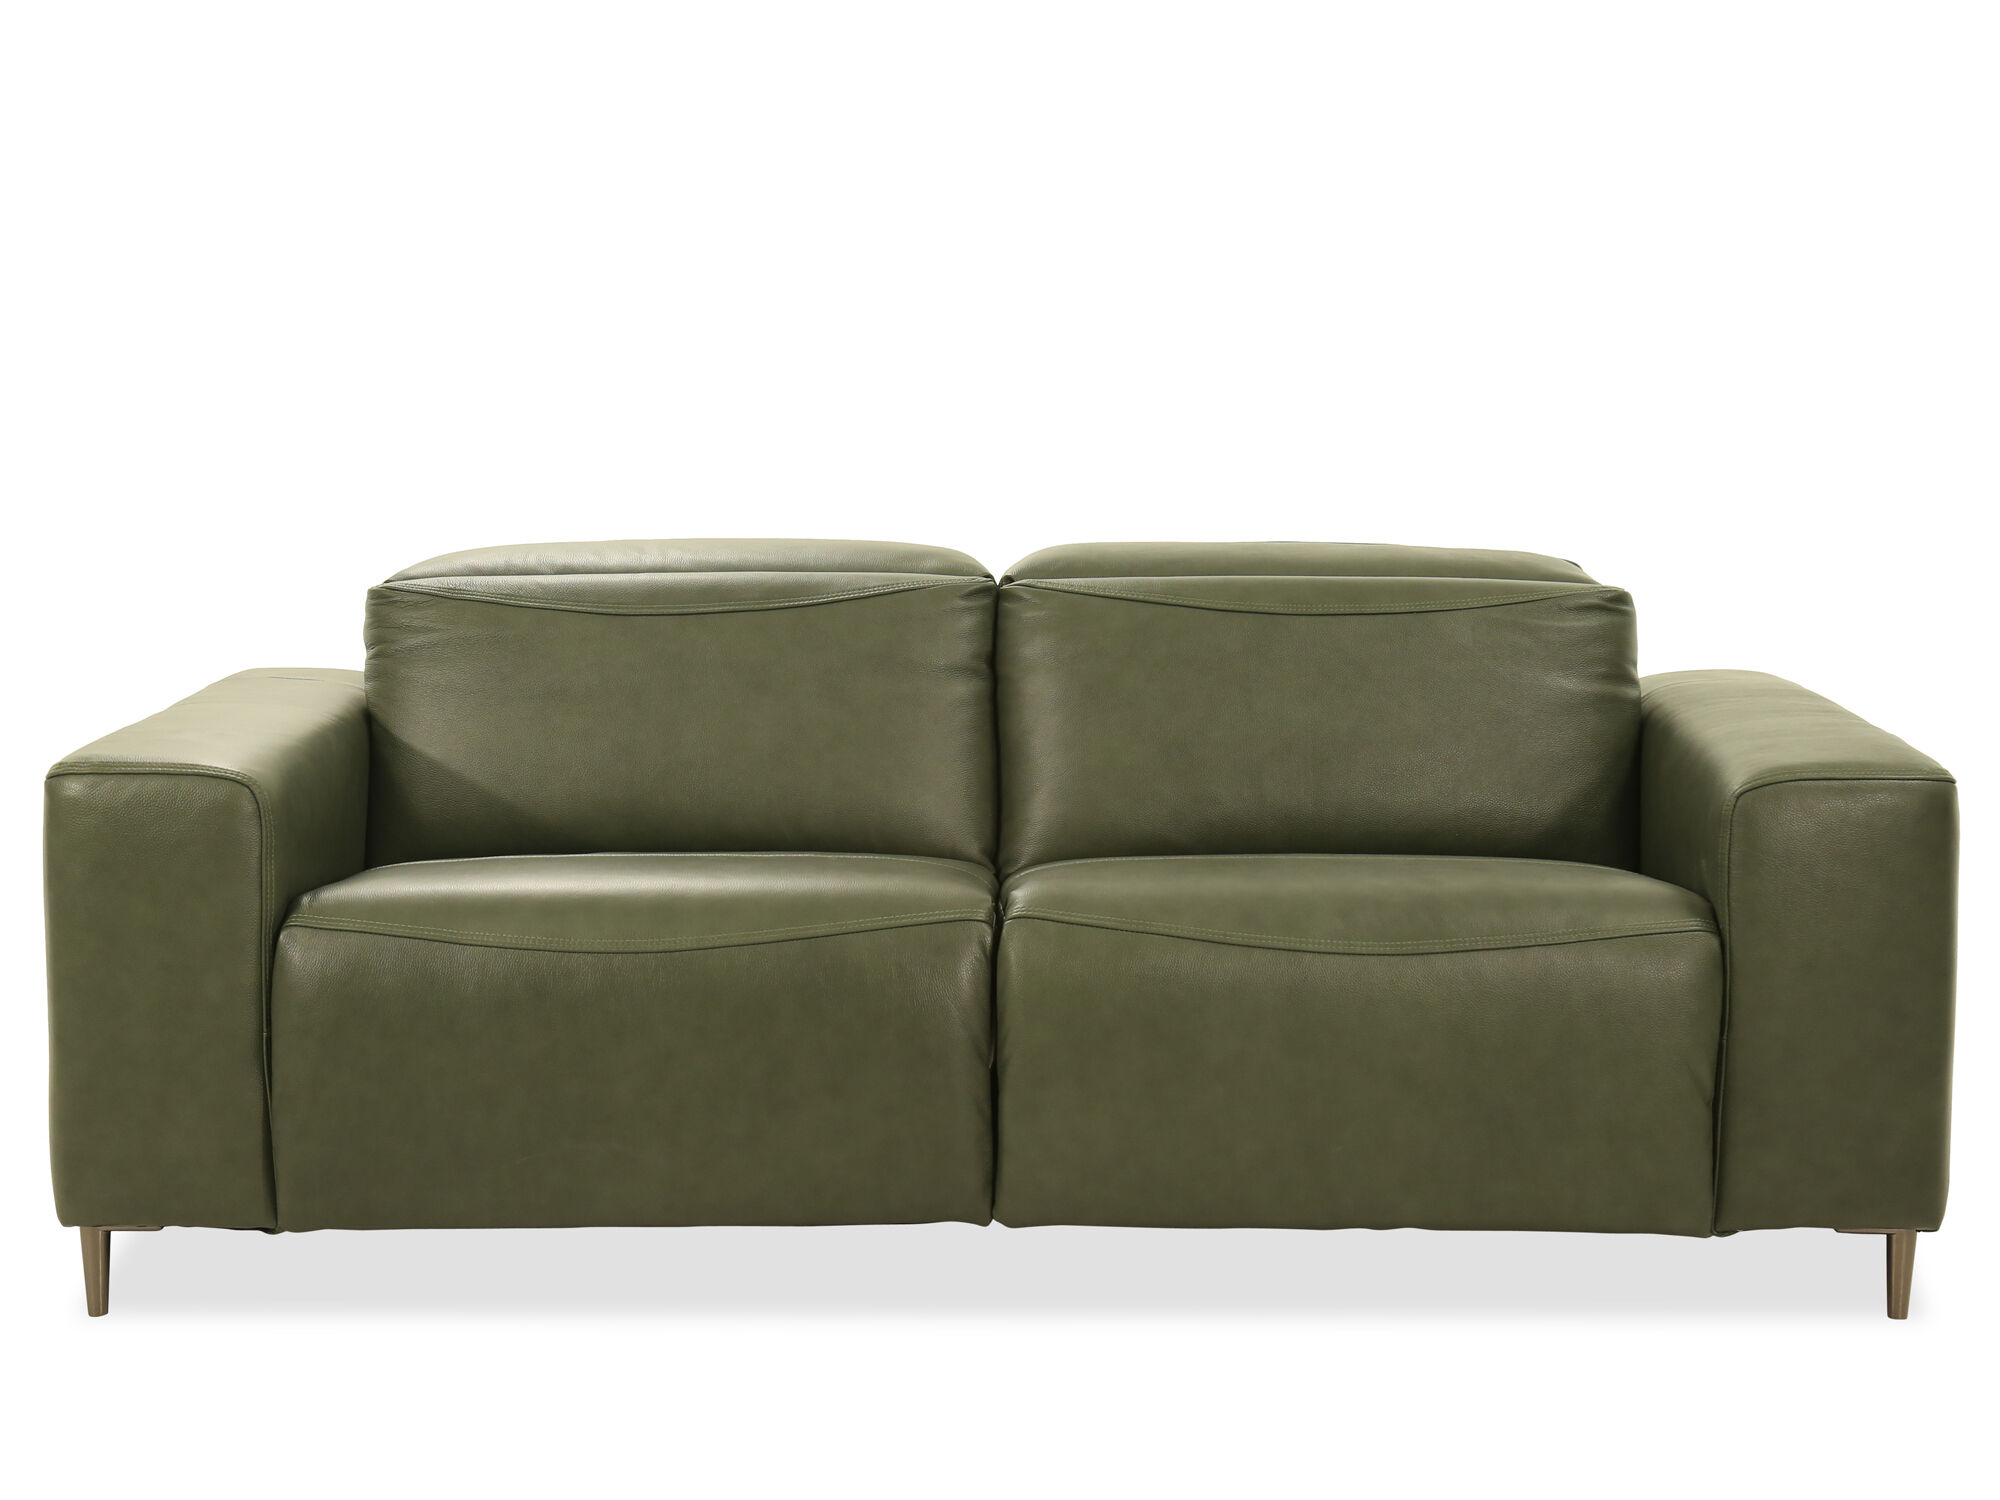 Power Reclining Leather Sofa in Green | Mathis Brothers ...